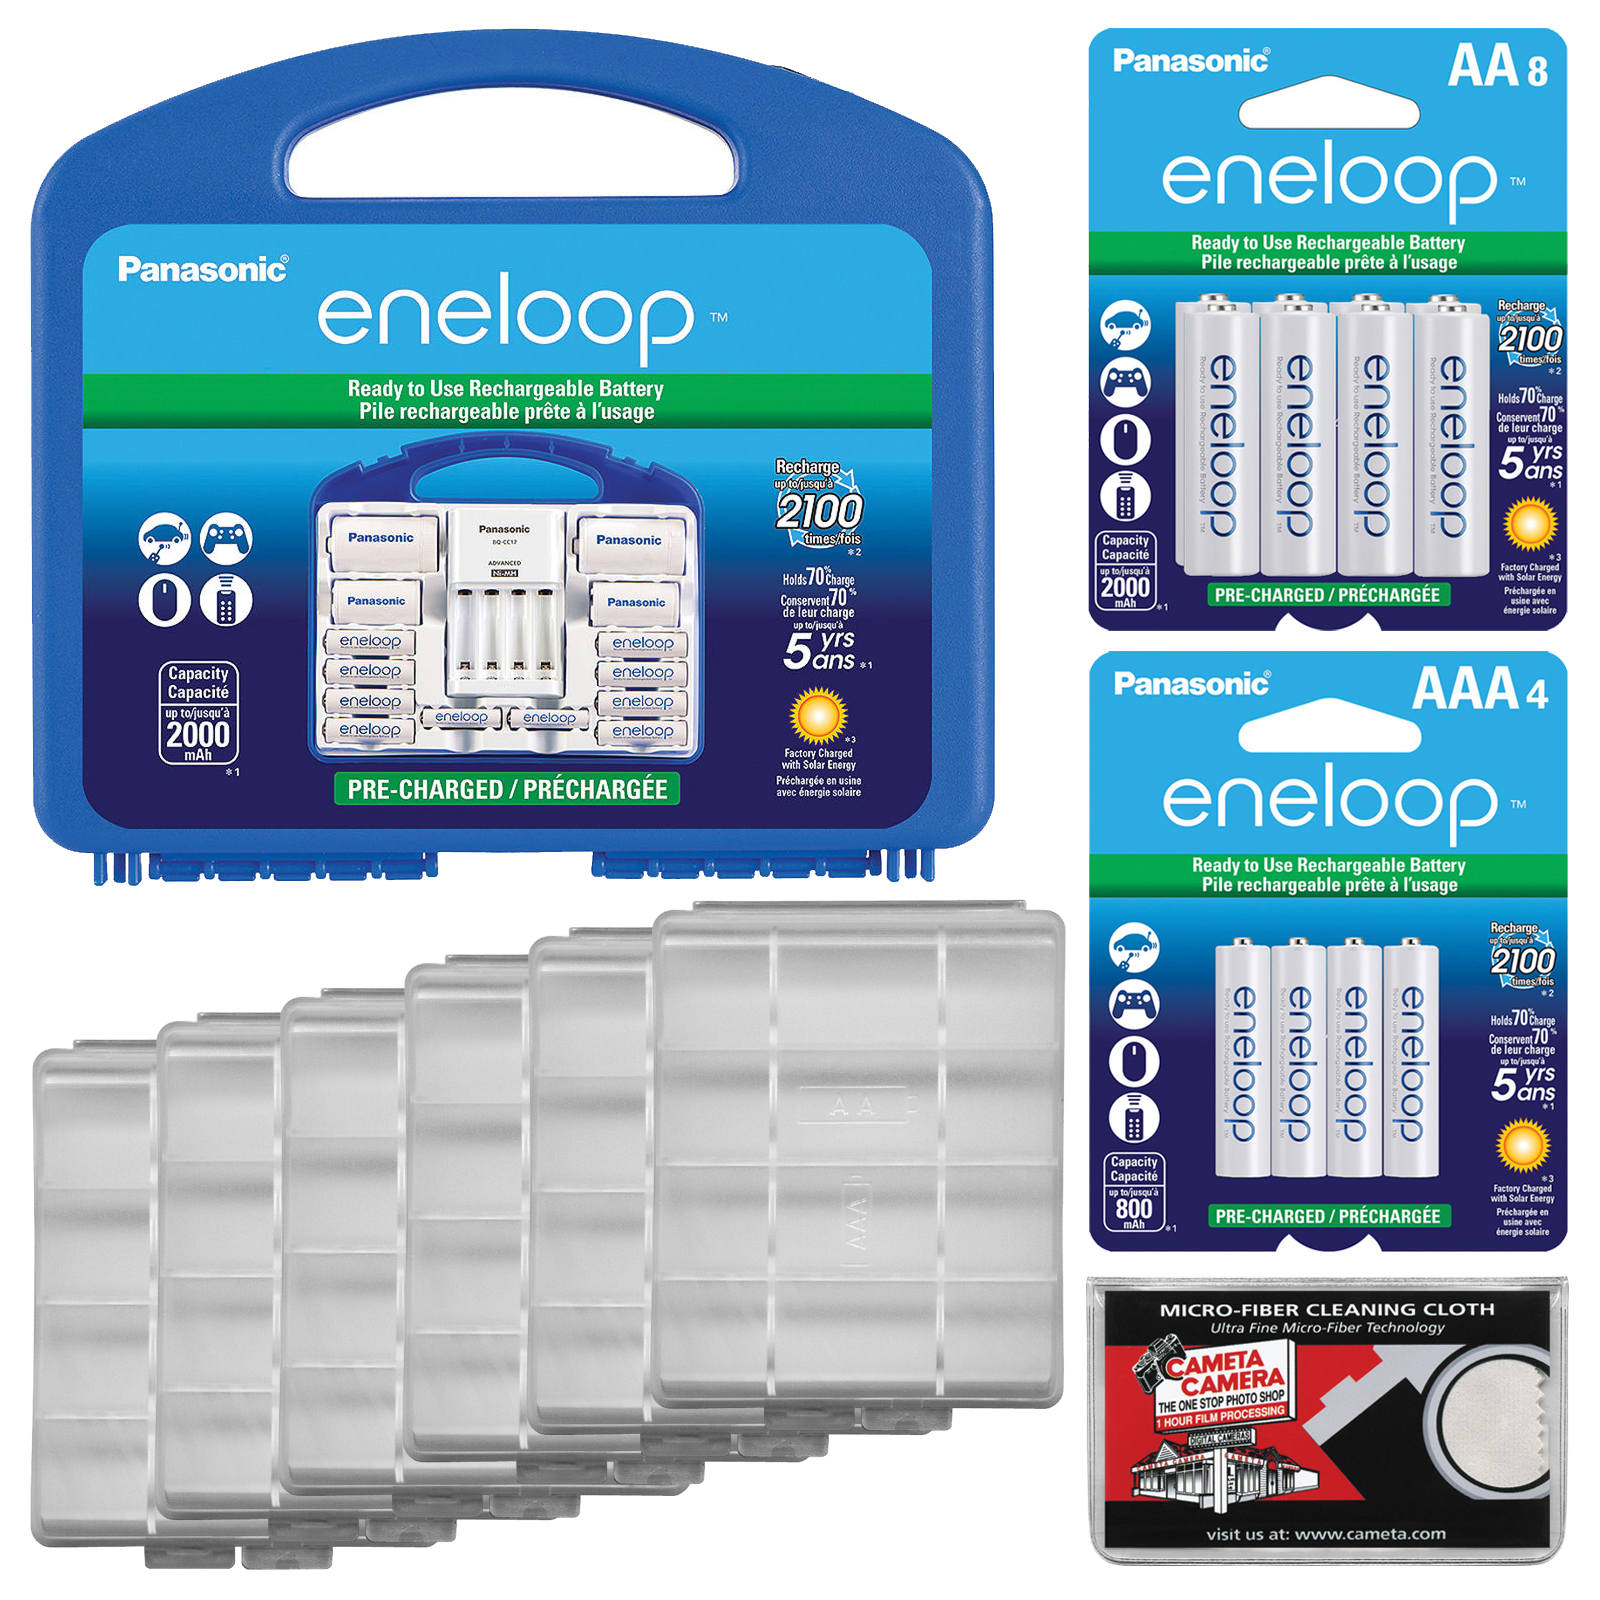 Panasonic eneloop Power Pack Set with 8 AA, 2 AAA Rechargeable Batteries, Charger & Case + (8) Extra AA Batteries + (4) Extra AAA Batteries + (6) Battery Cases + Kit